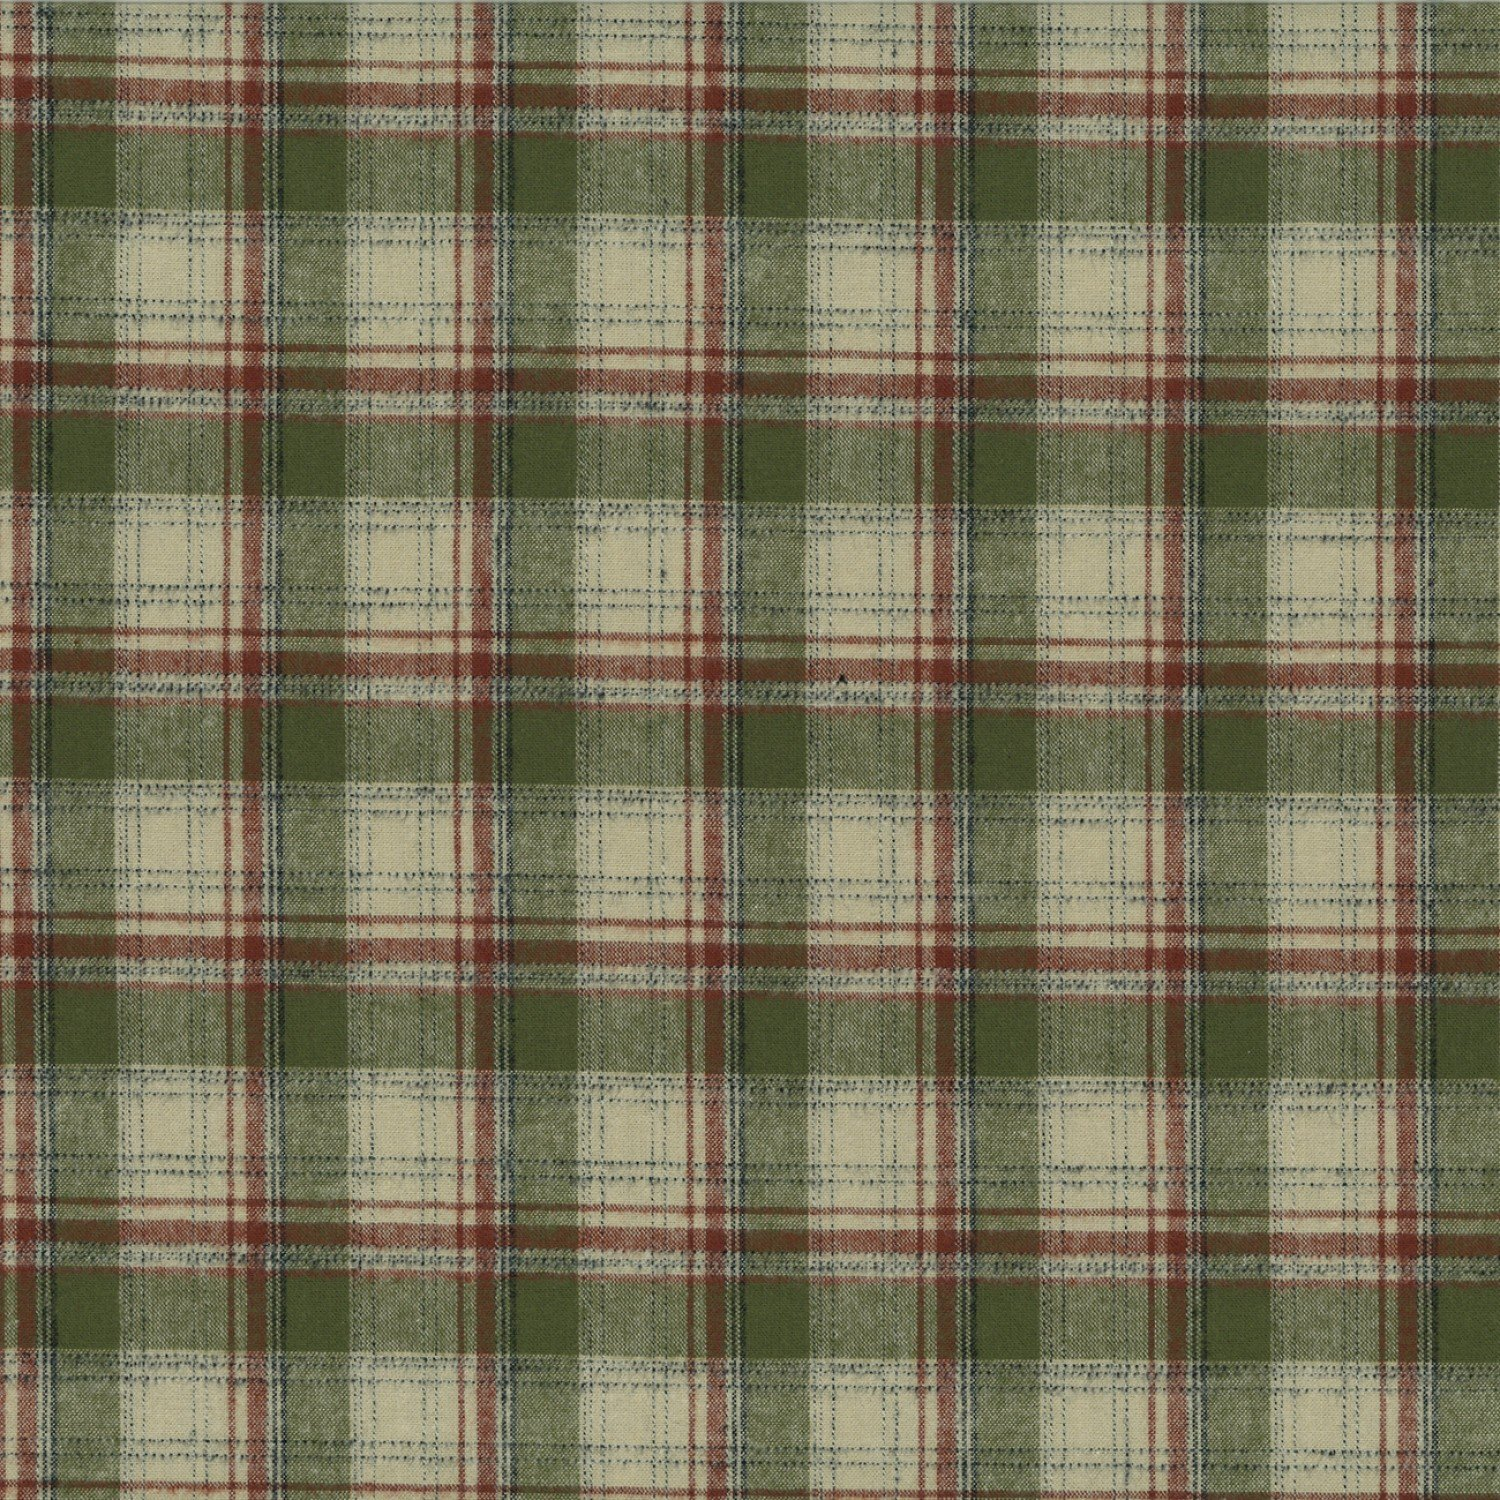 Centenary Collection - Brushed Cotton Plaid Olive/Burgandy